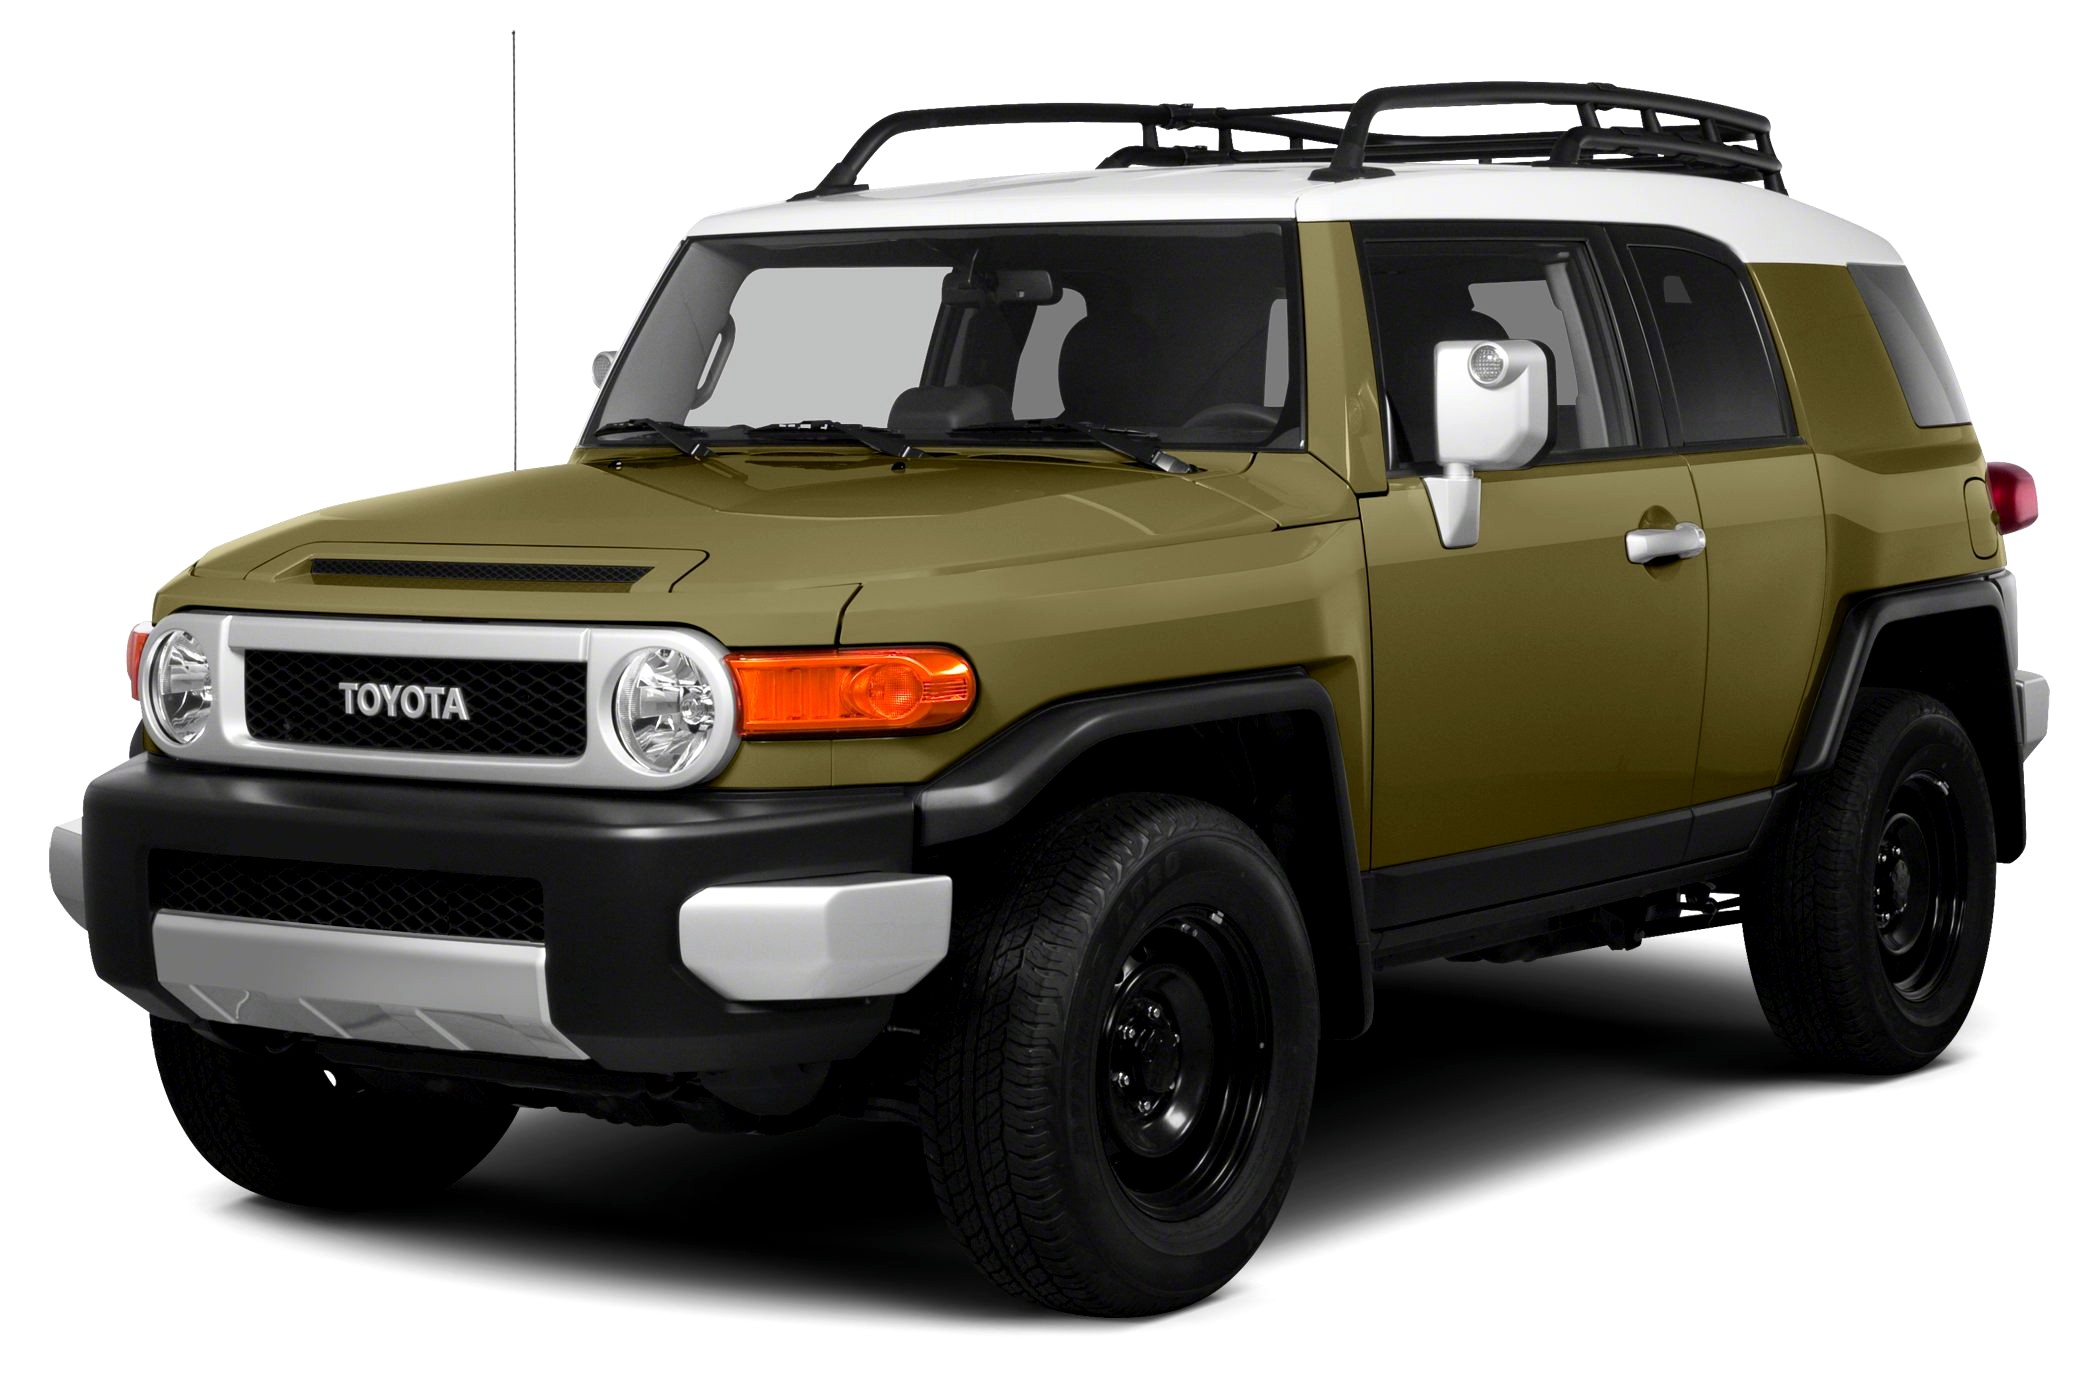 2016 toyota fj cruiser pictures information and specs auto. Black Bedroom Furniture Sets. Home Design Ideas